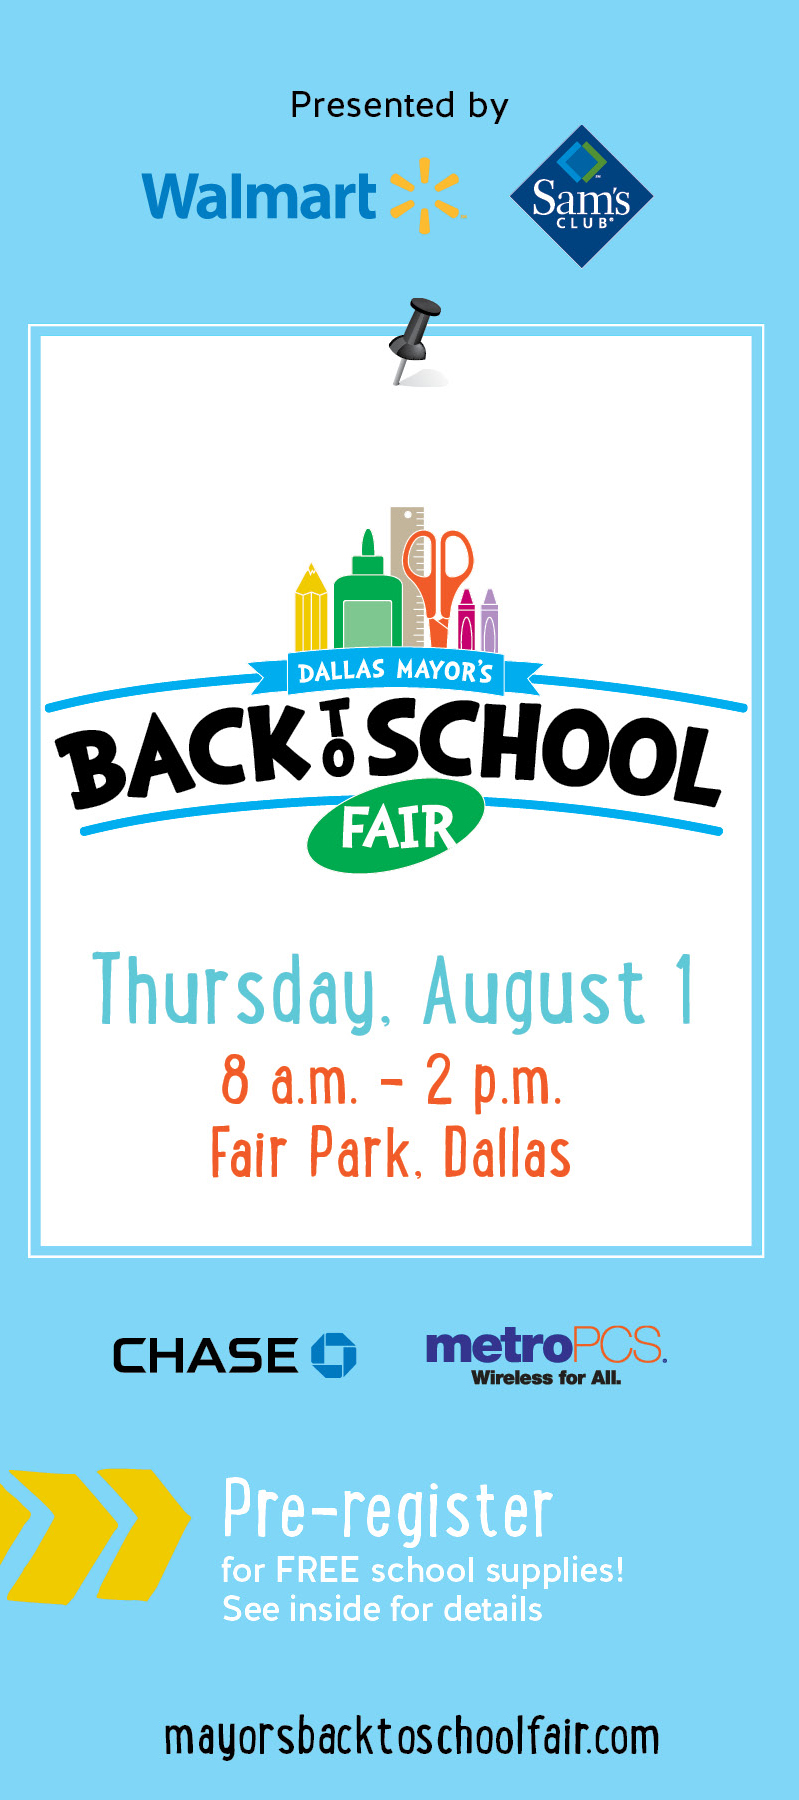 Dallas Mayor's Back to School Fair